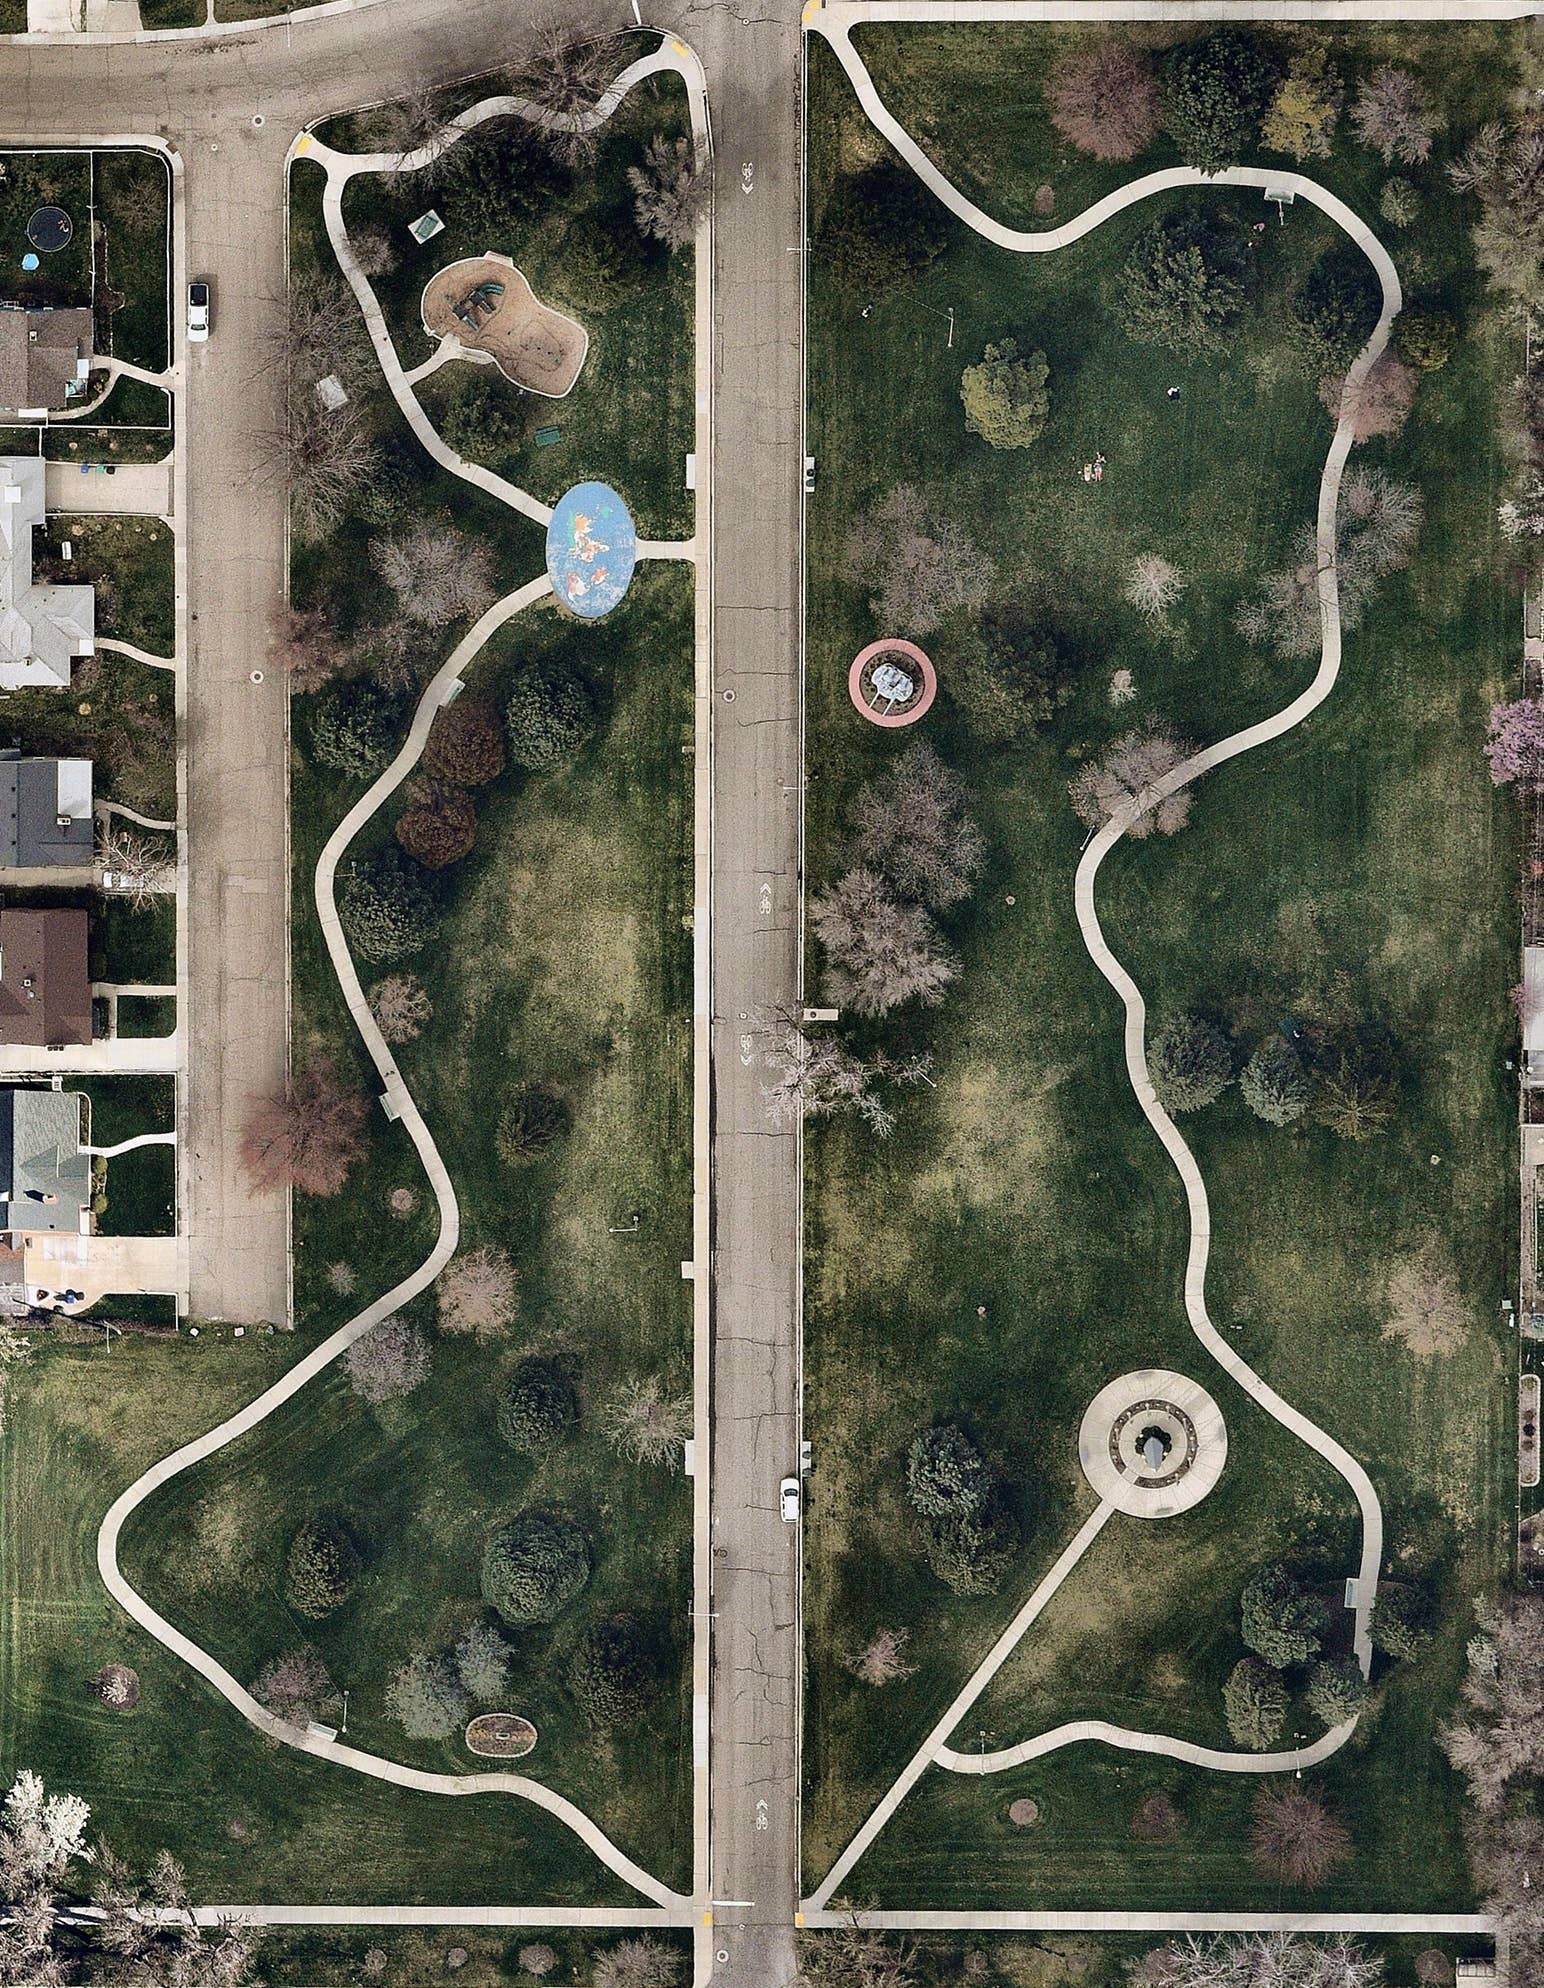 aerial, landscaping, park, Provo, UT, 2019 April 04